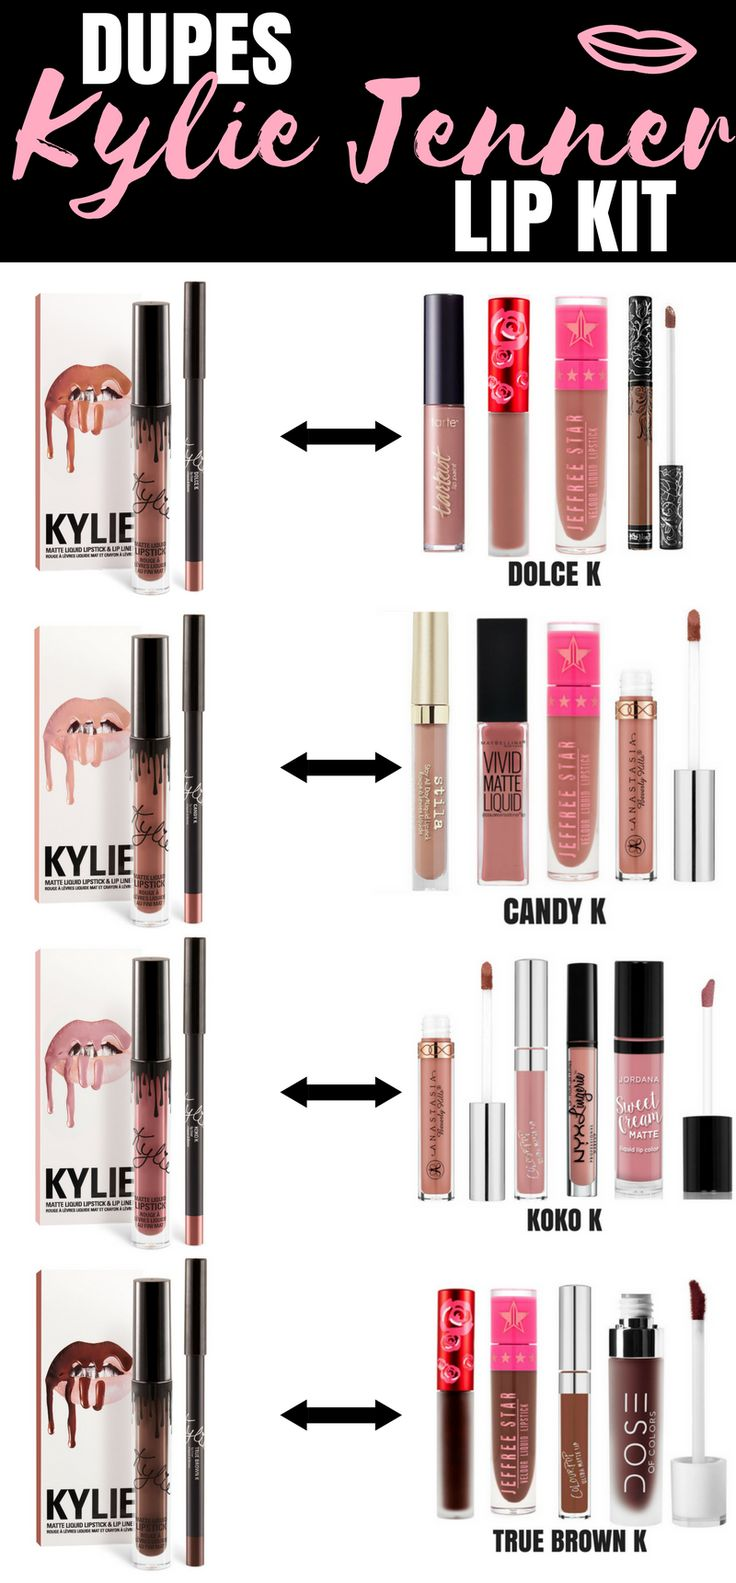 Kylie Jenner lip kit dupes DOLCE K, KOKO K, CANDY K, TRUE BROWN K by Alejandra Avila